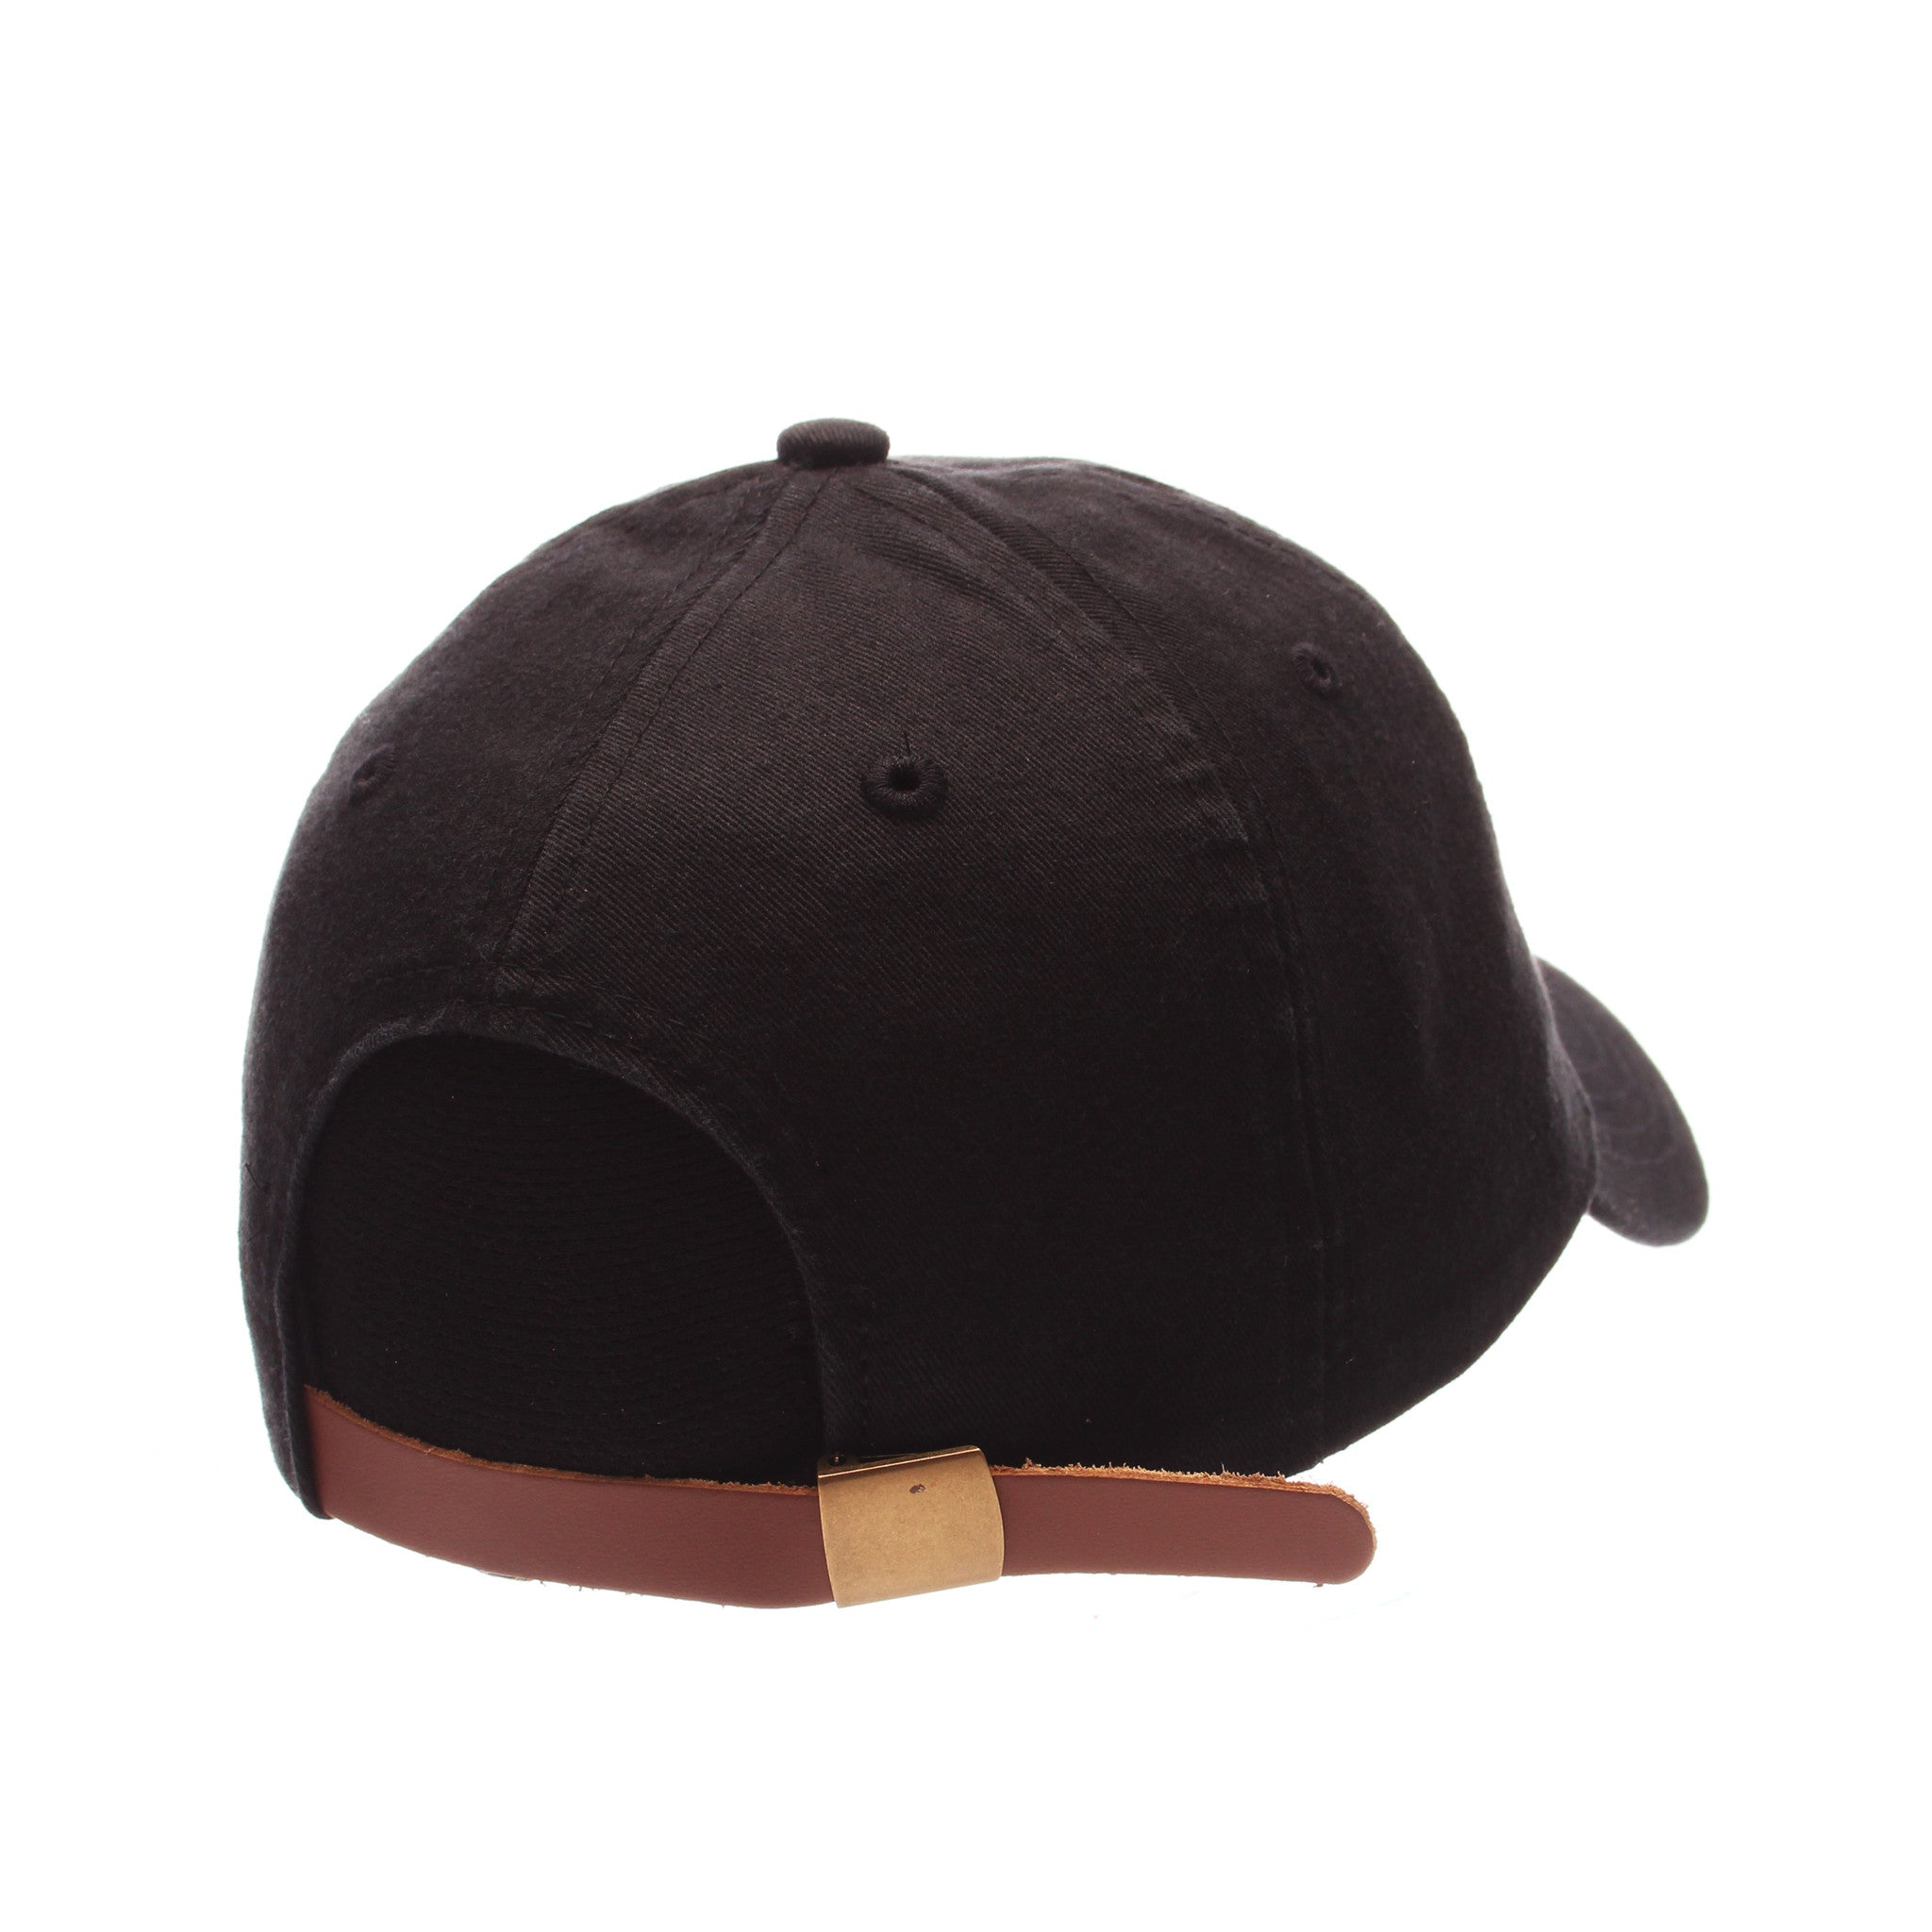 No Royalties Dad Hat (FROWNY FACE) Black Washed Adjustable hats by Zephyr